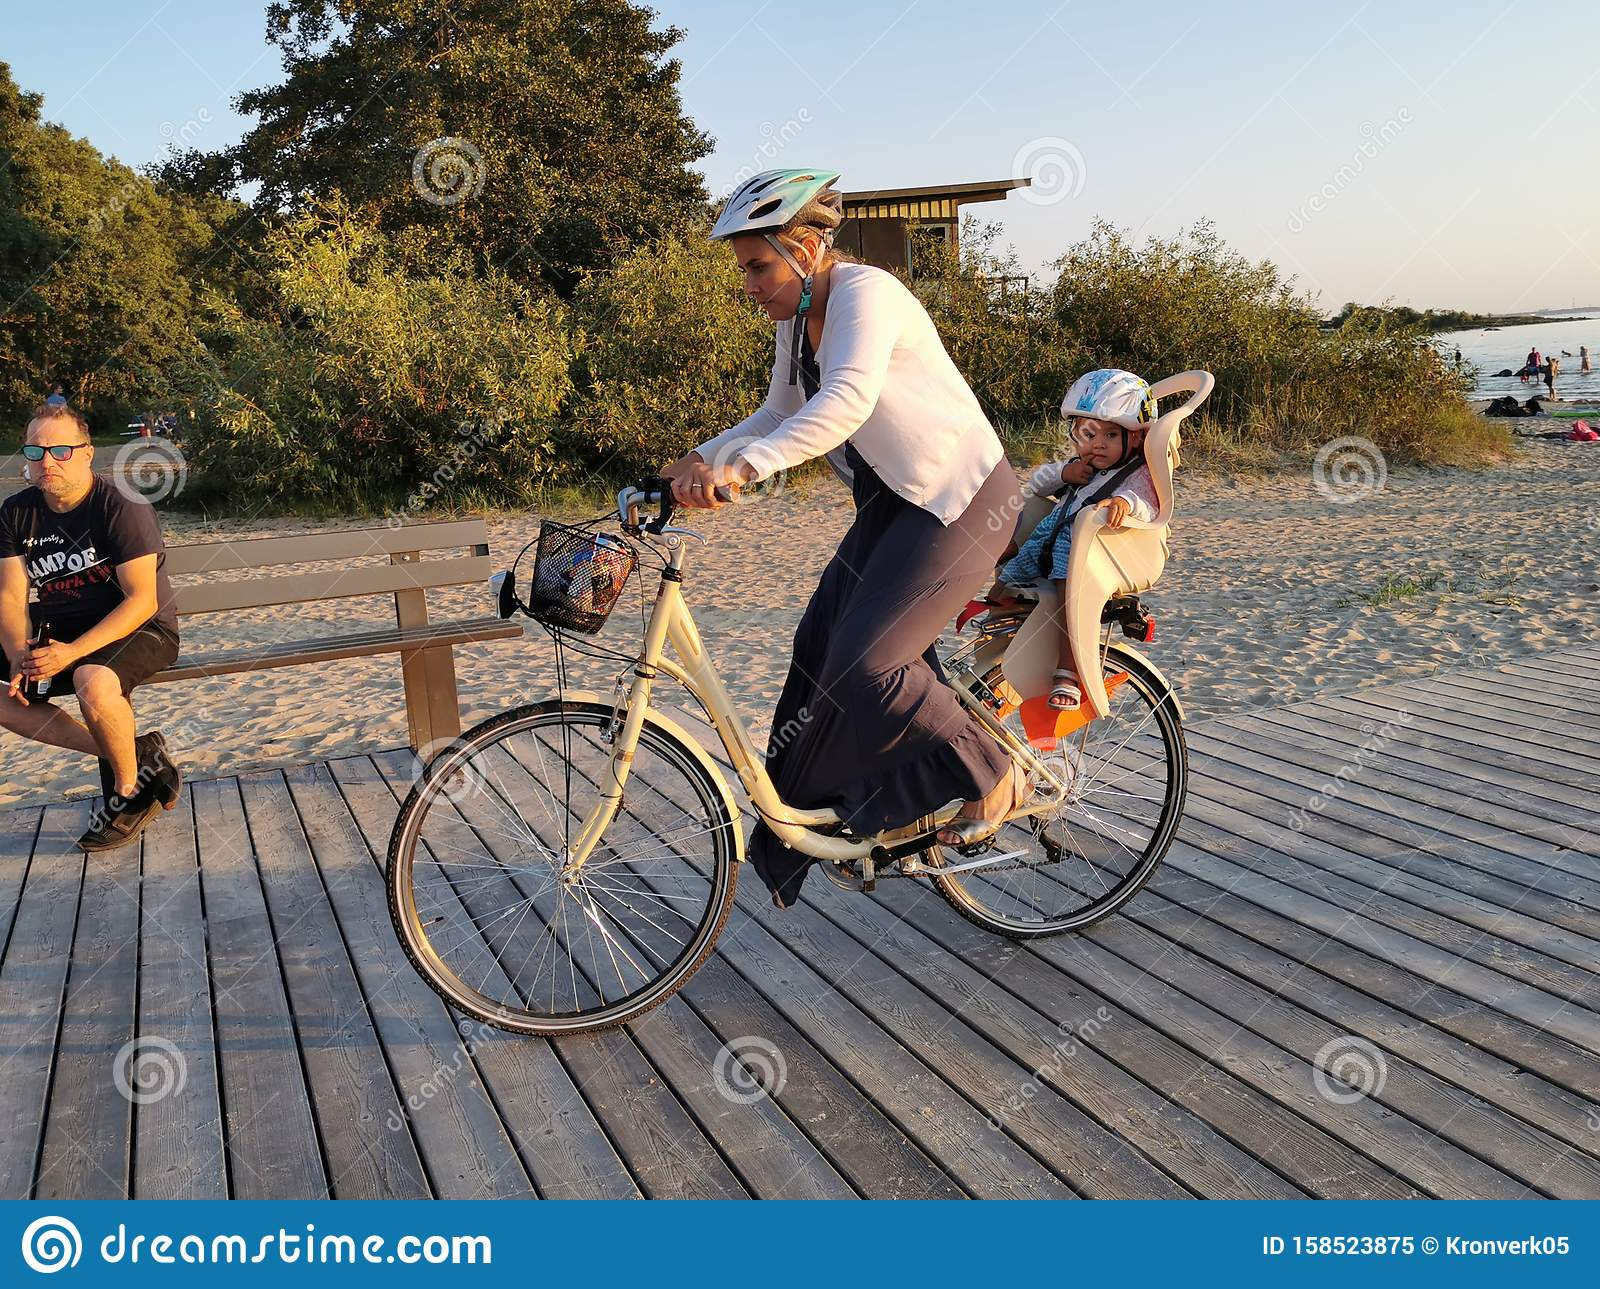 Tallinn, Estonia - 09.2019. silhouettes of a Bicycle against the sunset on the sea. Adults and children Cycling